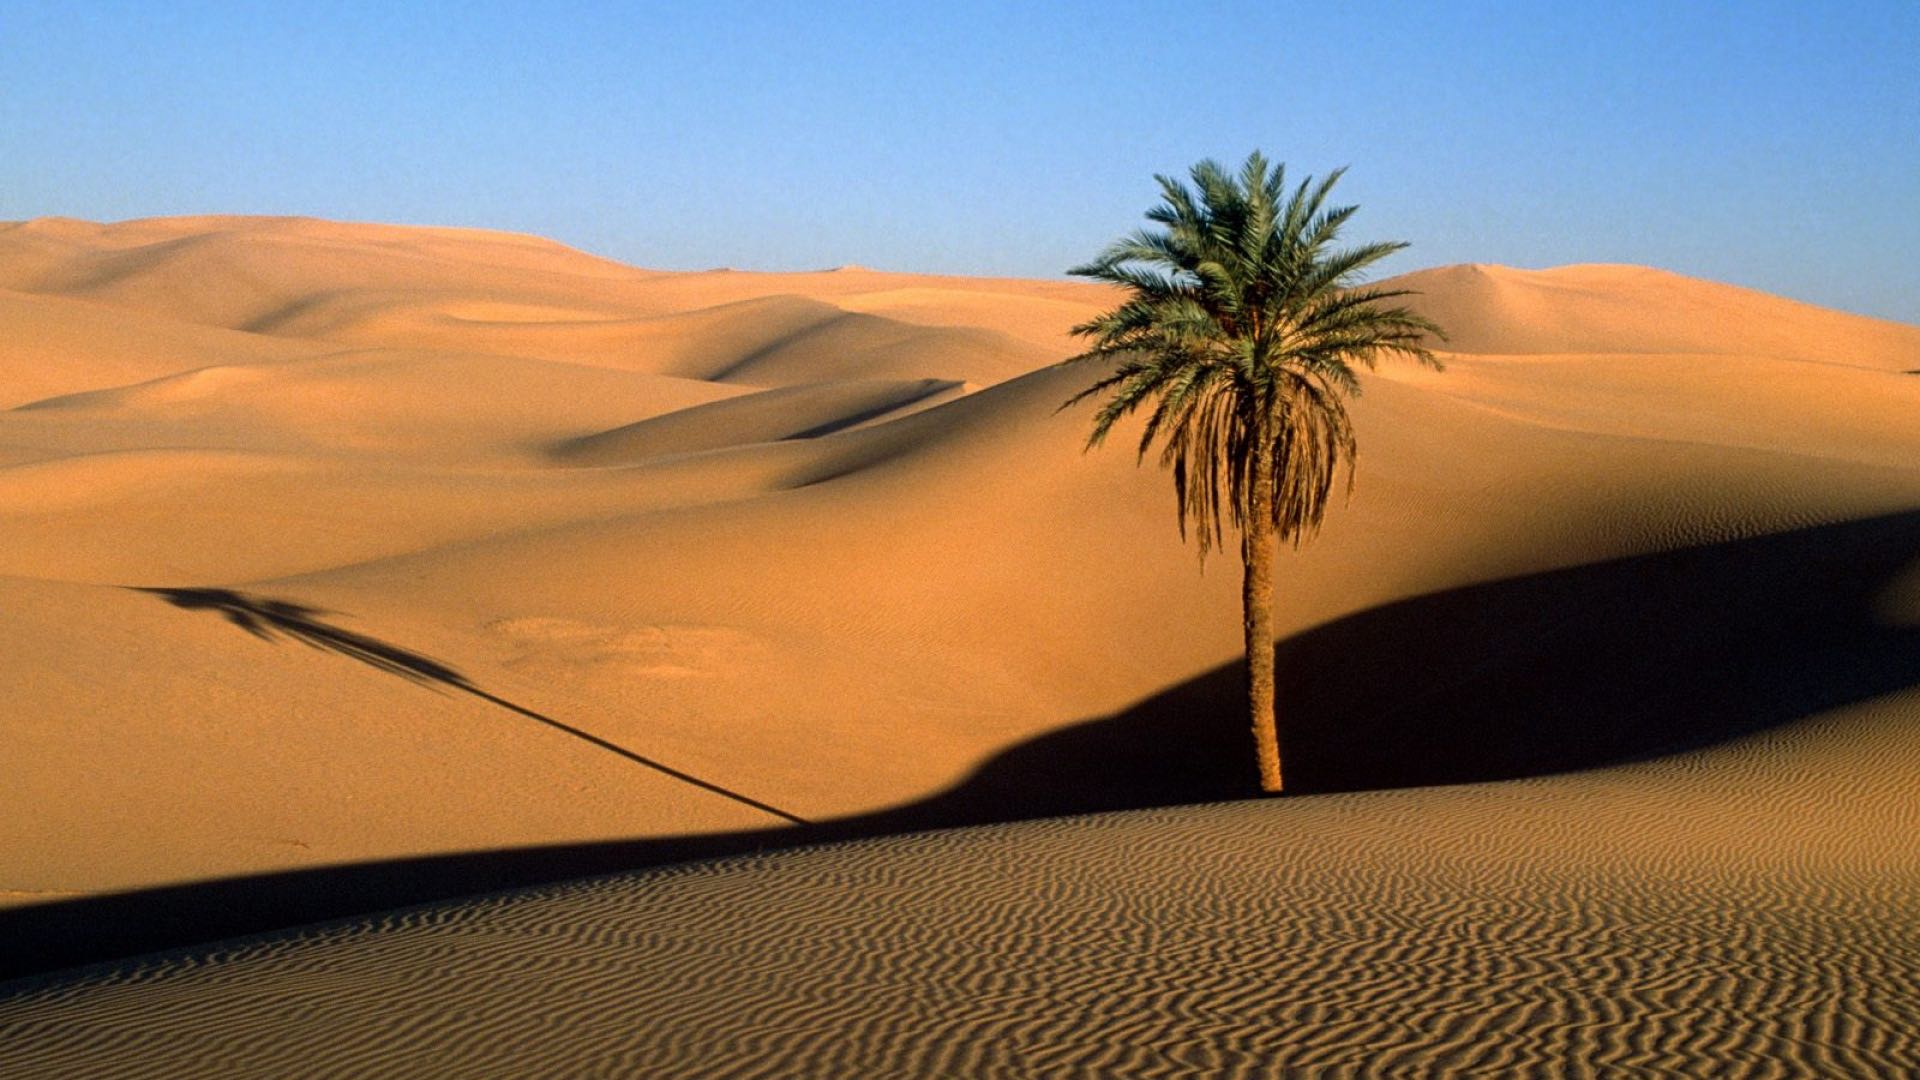 Palm tree in desert